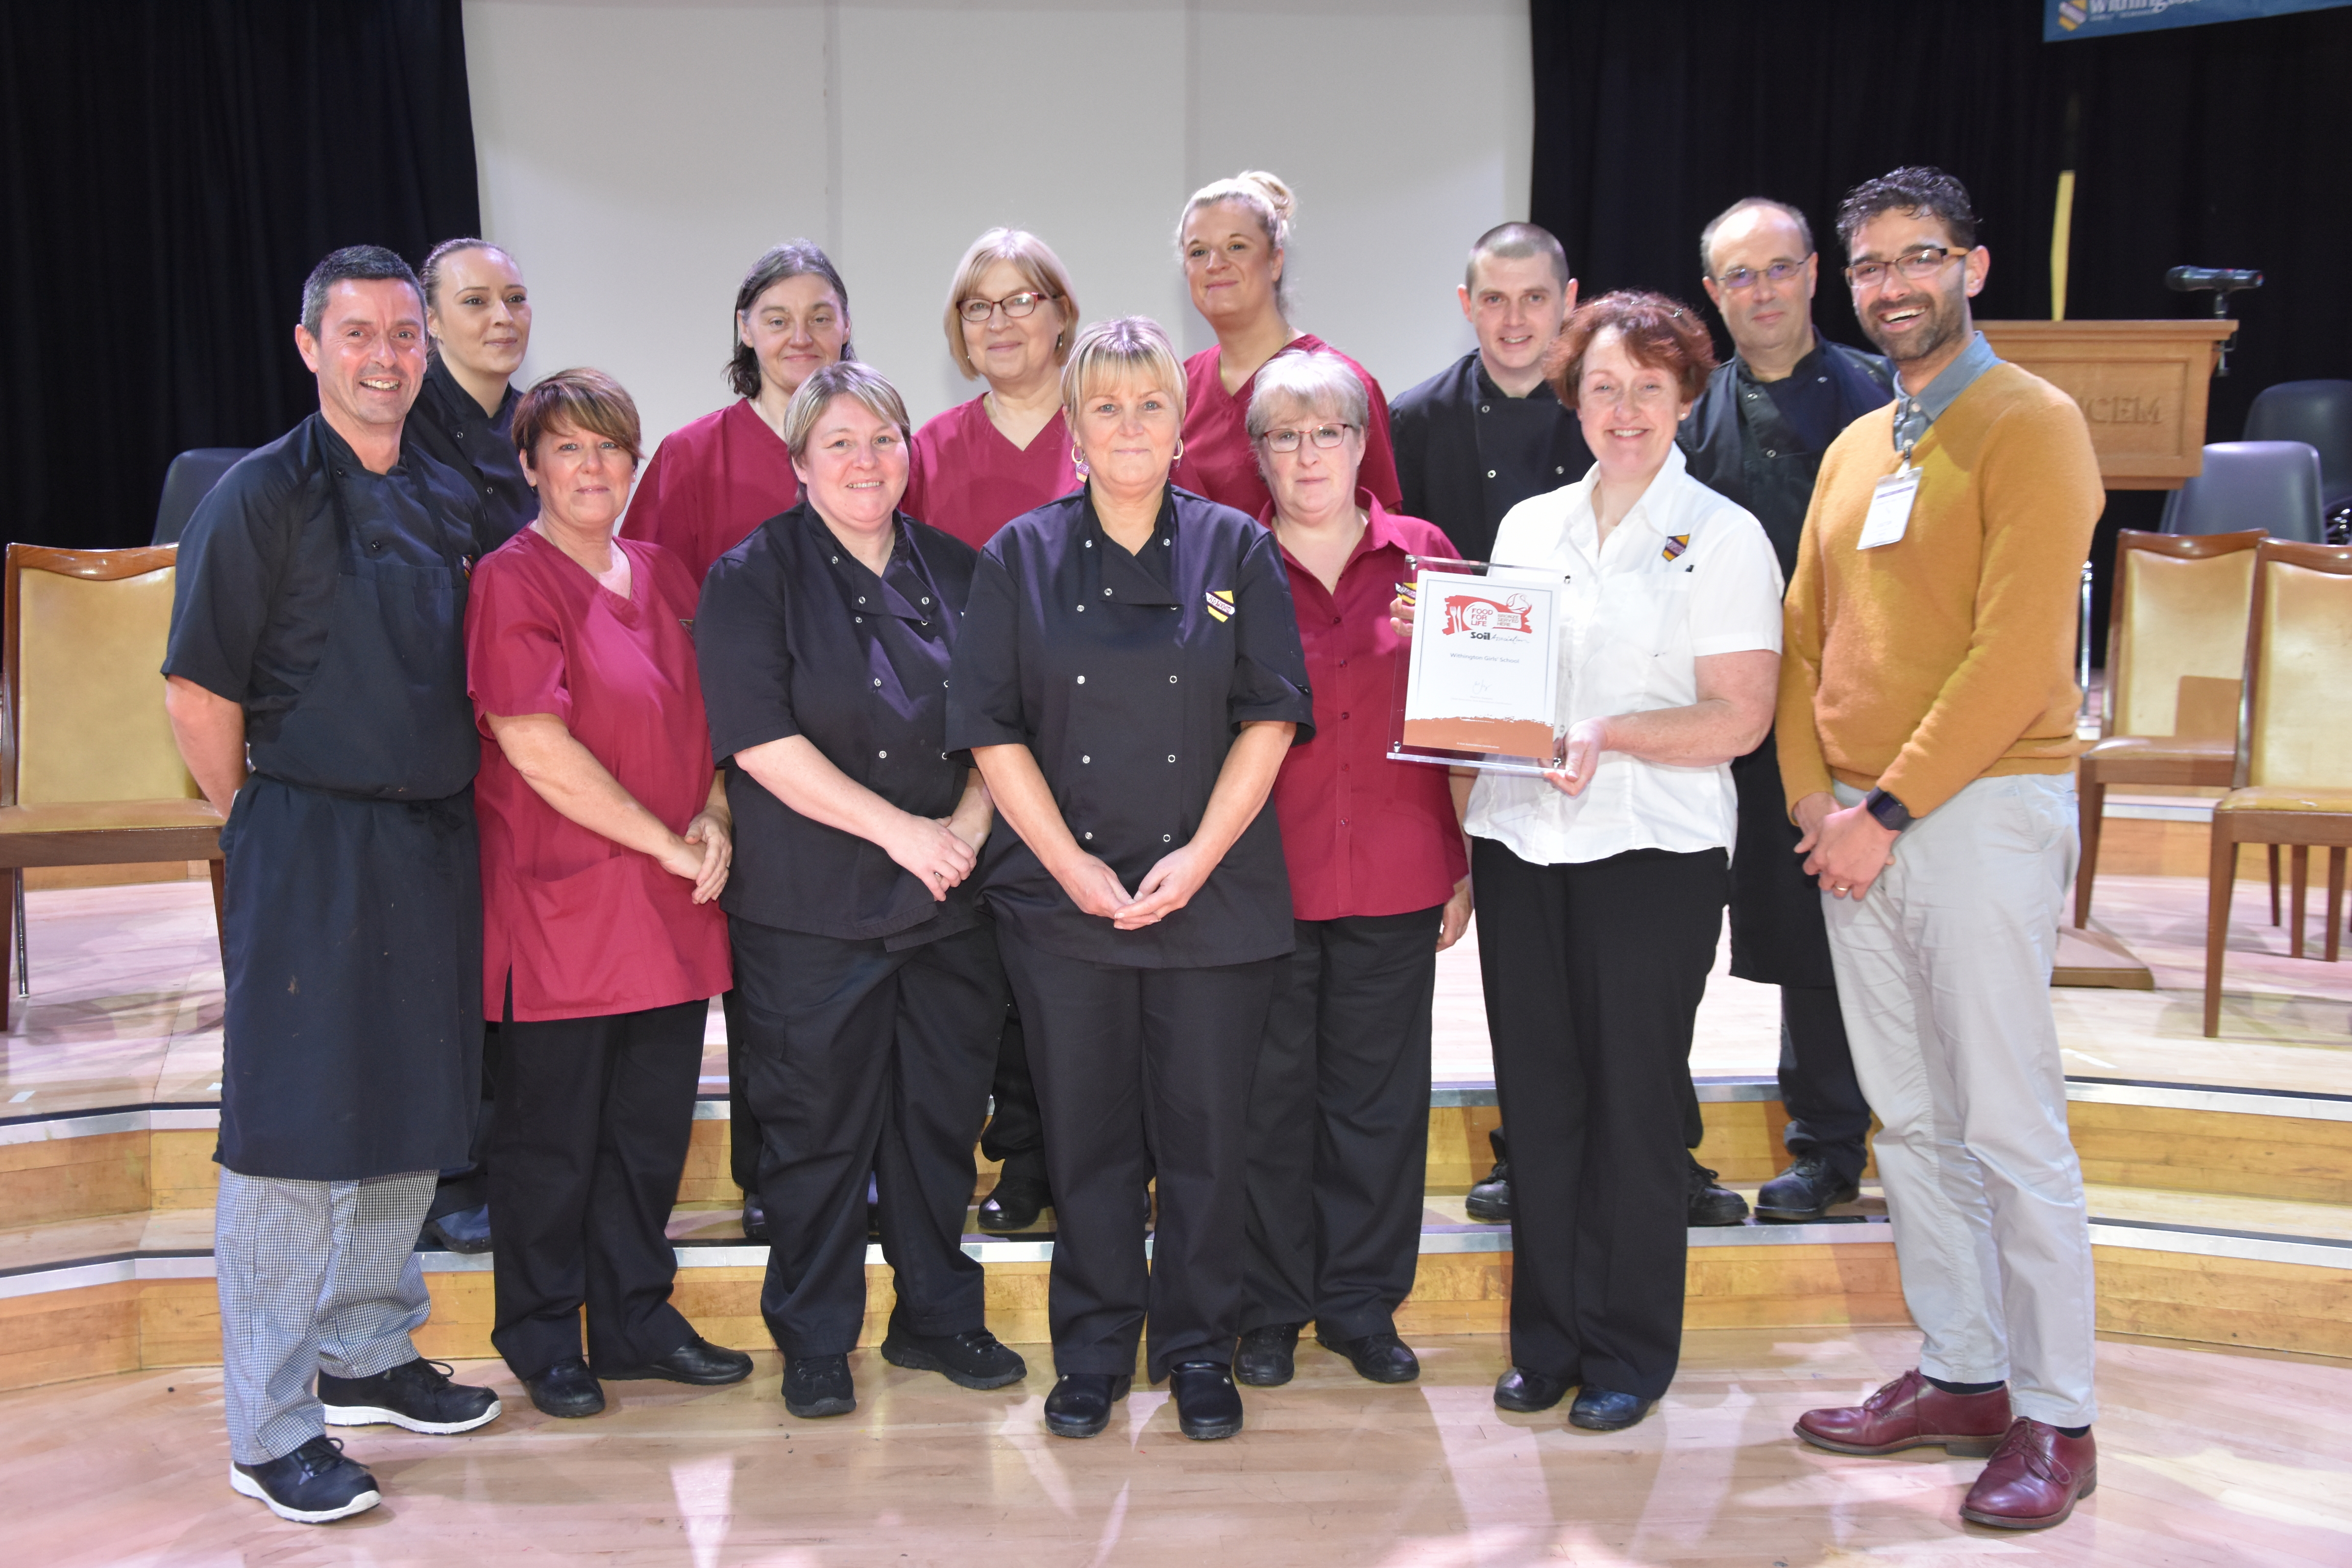 Withington Girls' School is delighted to be the first independent school in the North West to have achieved a Food for Life Served Here award. Pictured here (second from right, front row) is head of catering, Mrs Sheena Cartledge, and the WGS catering team with Soil Association development manager, David Persaud.